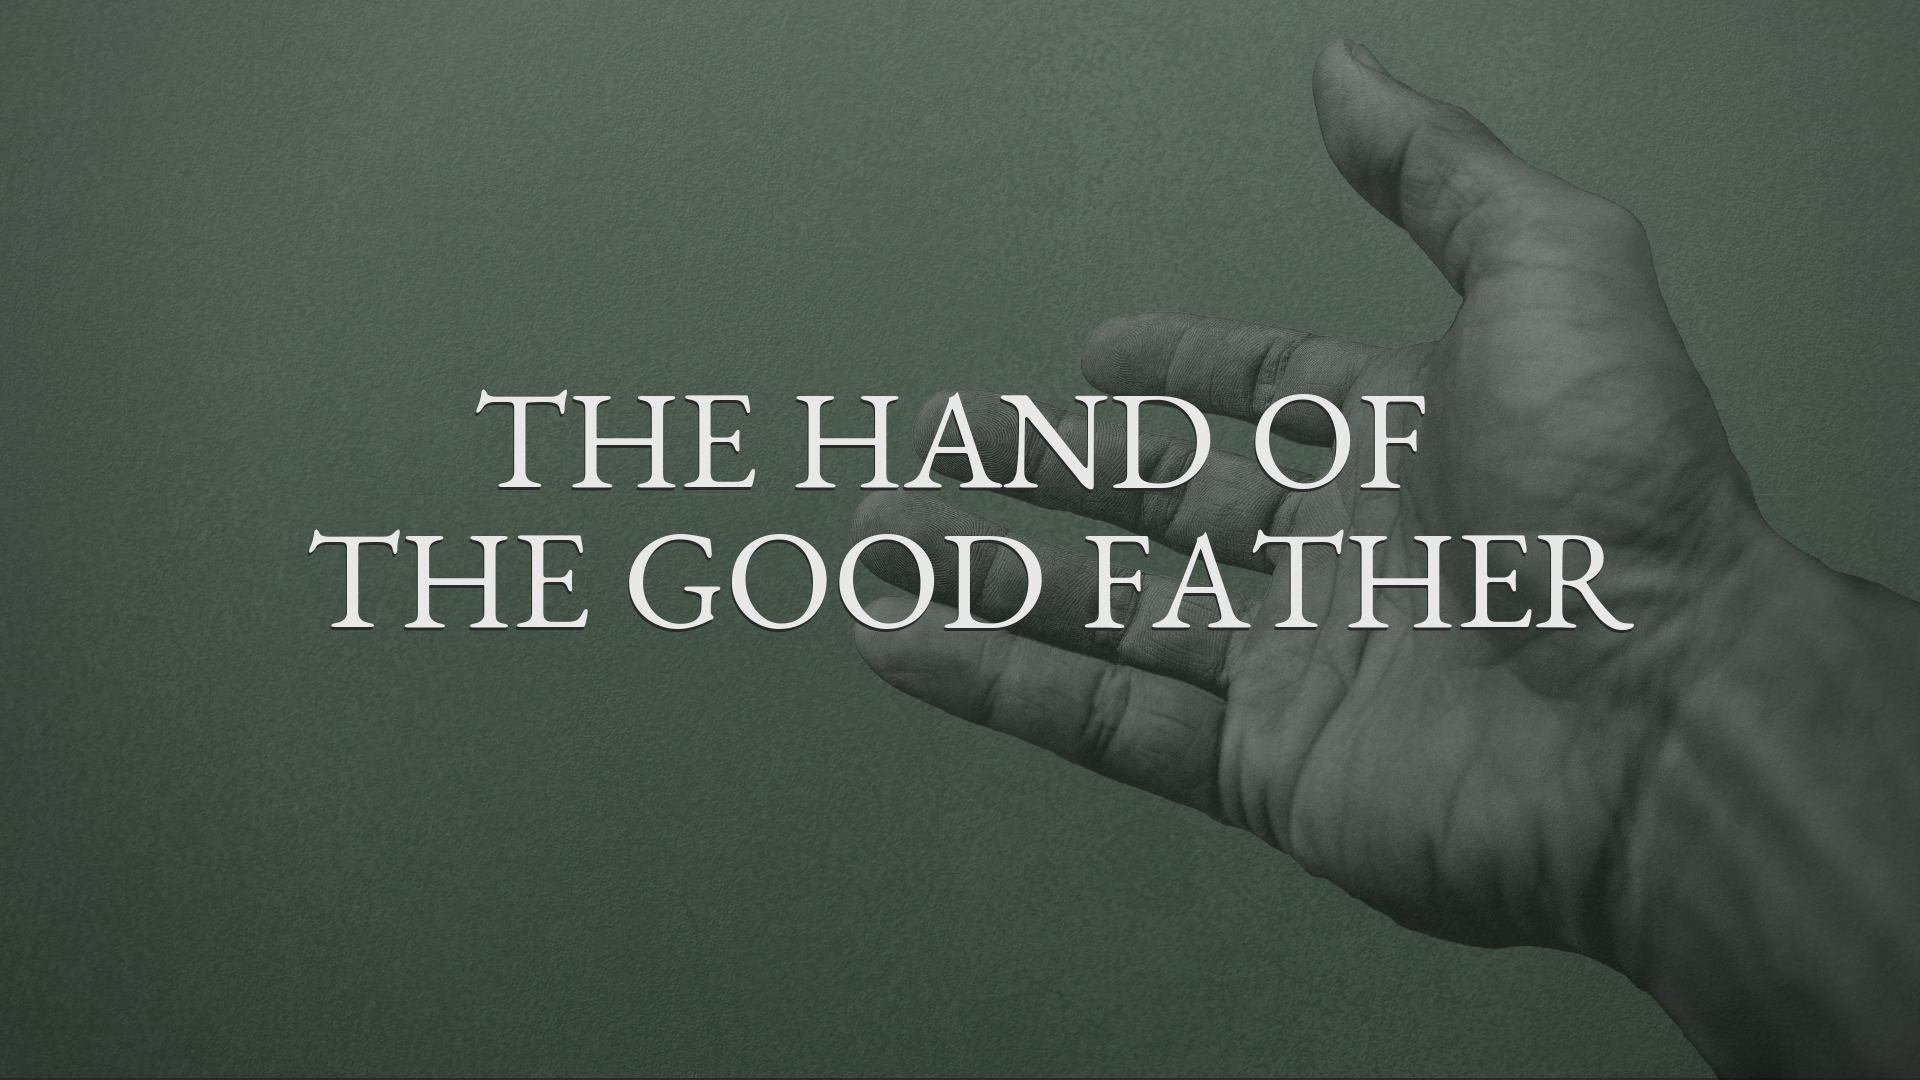 The Hand of The Good Father